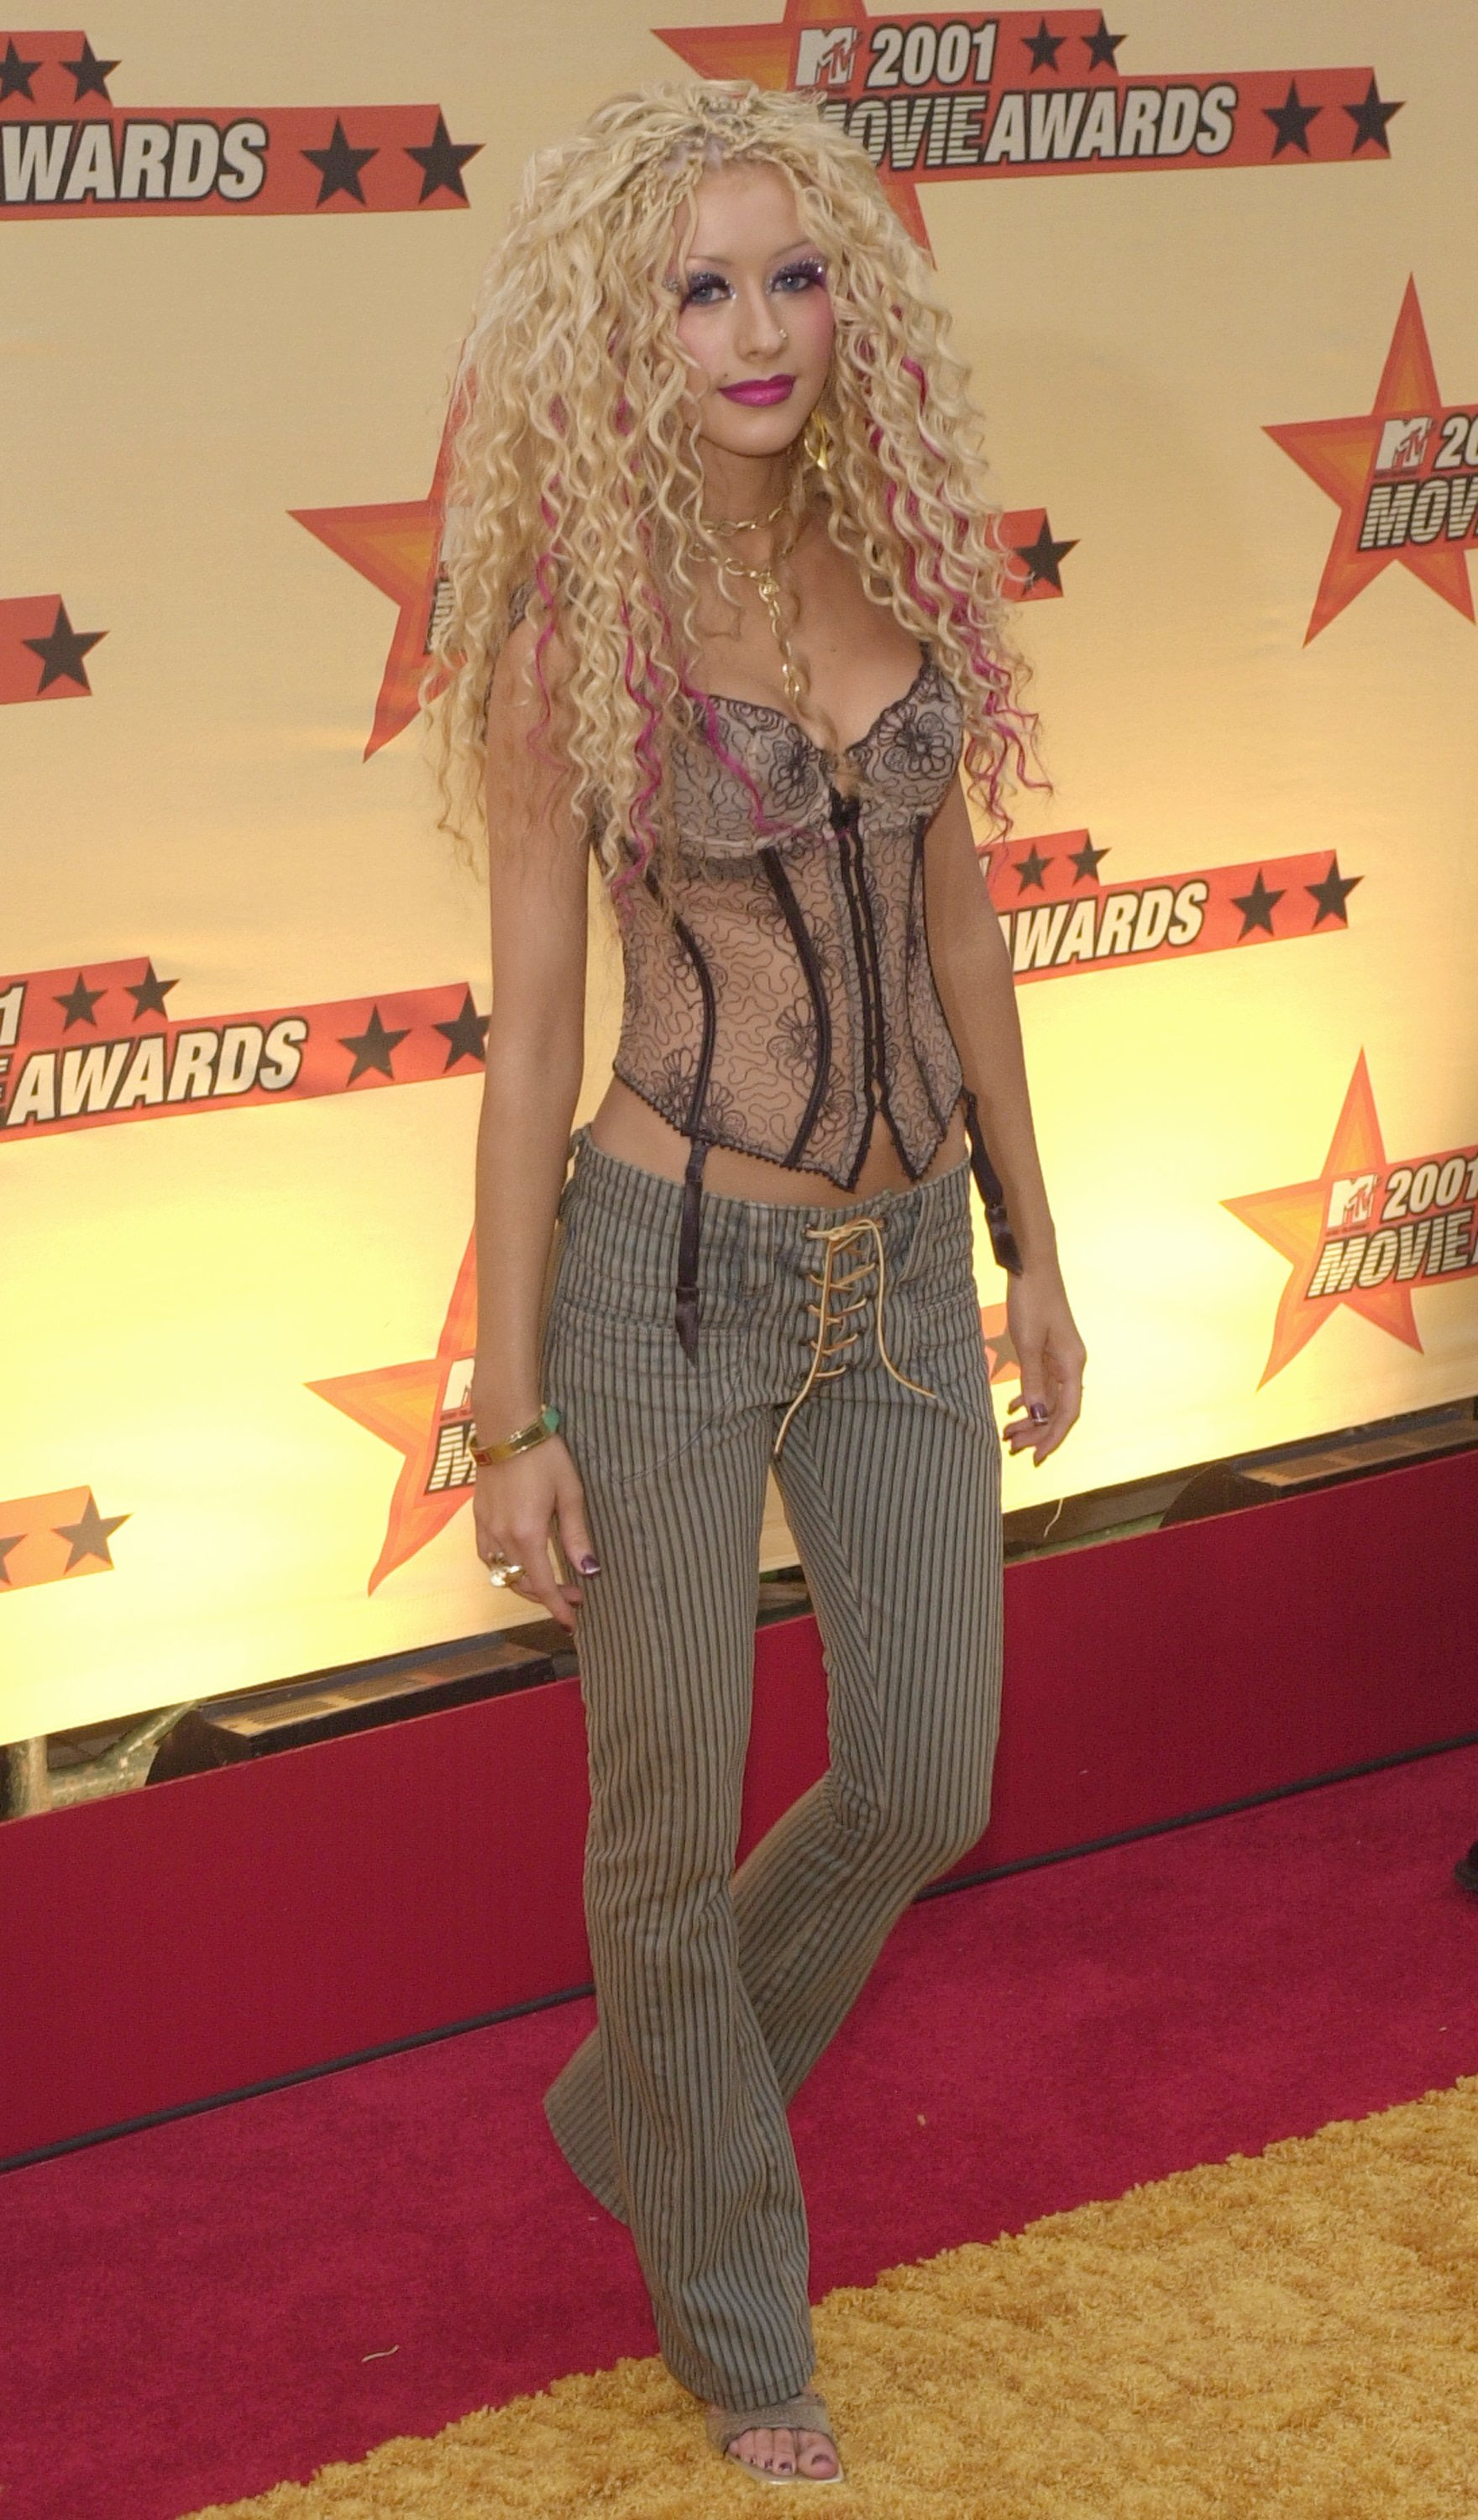 Popular Fashion Trends In 2001 - 40 pop star outfits that defined the 2000s including bikinis as shirts really bad denim and so so many sequins